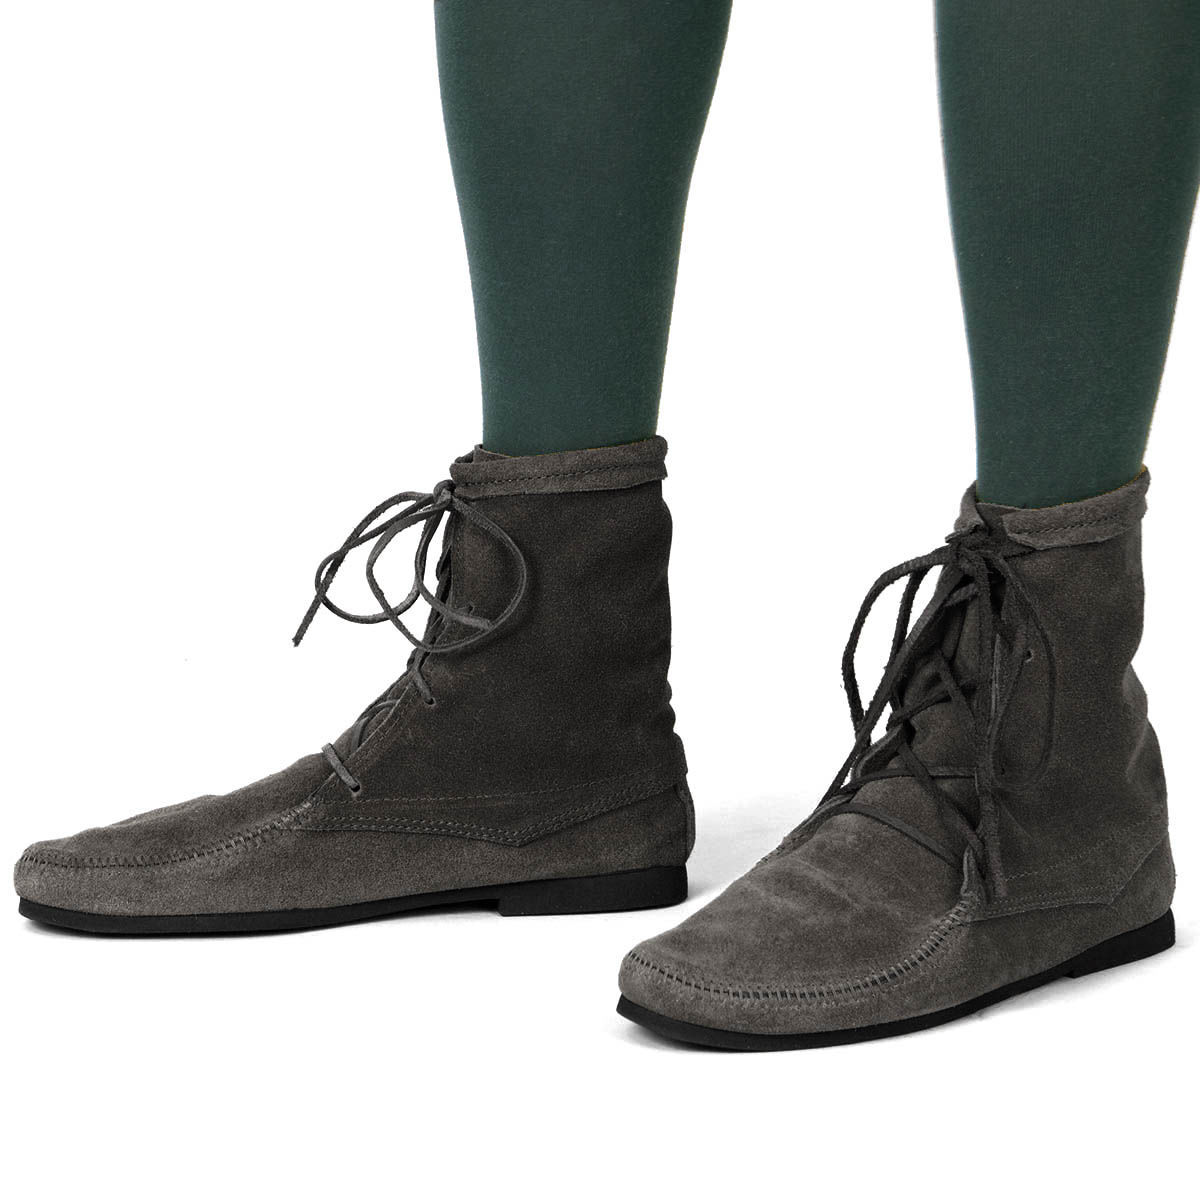 """Black suede boots with 1/8"""" thick cushioned insole and comfortable rubber sole so you can wear them all day long"""